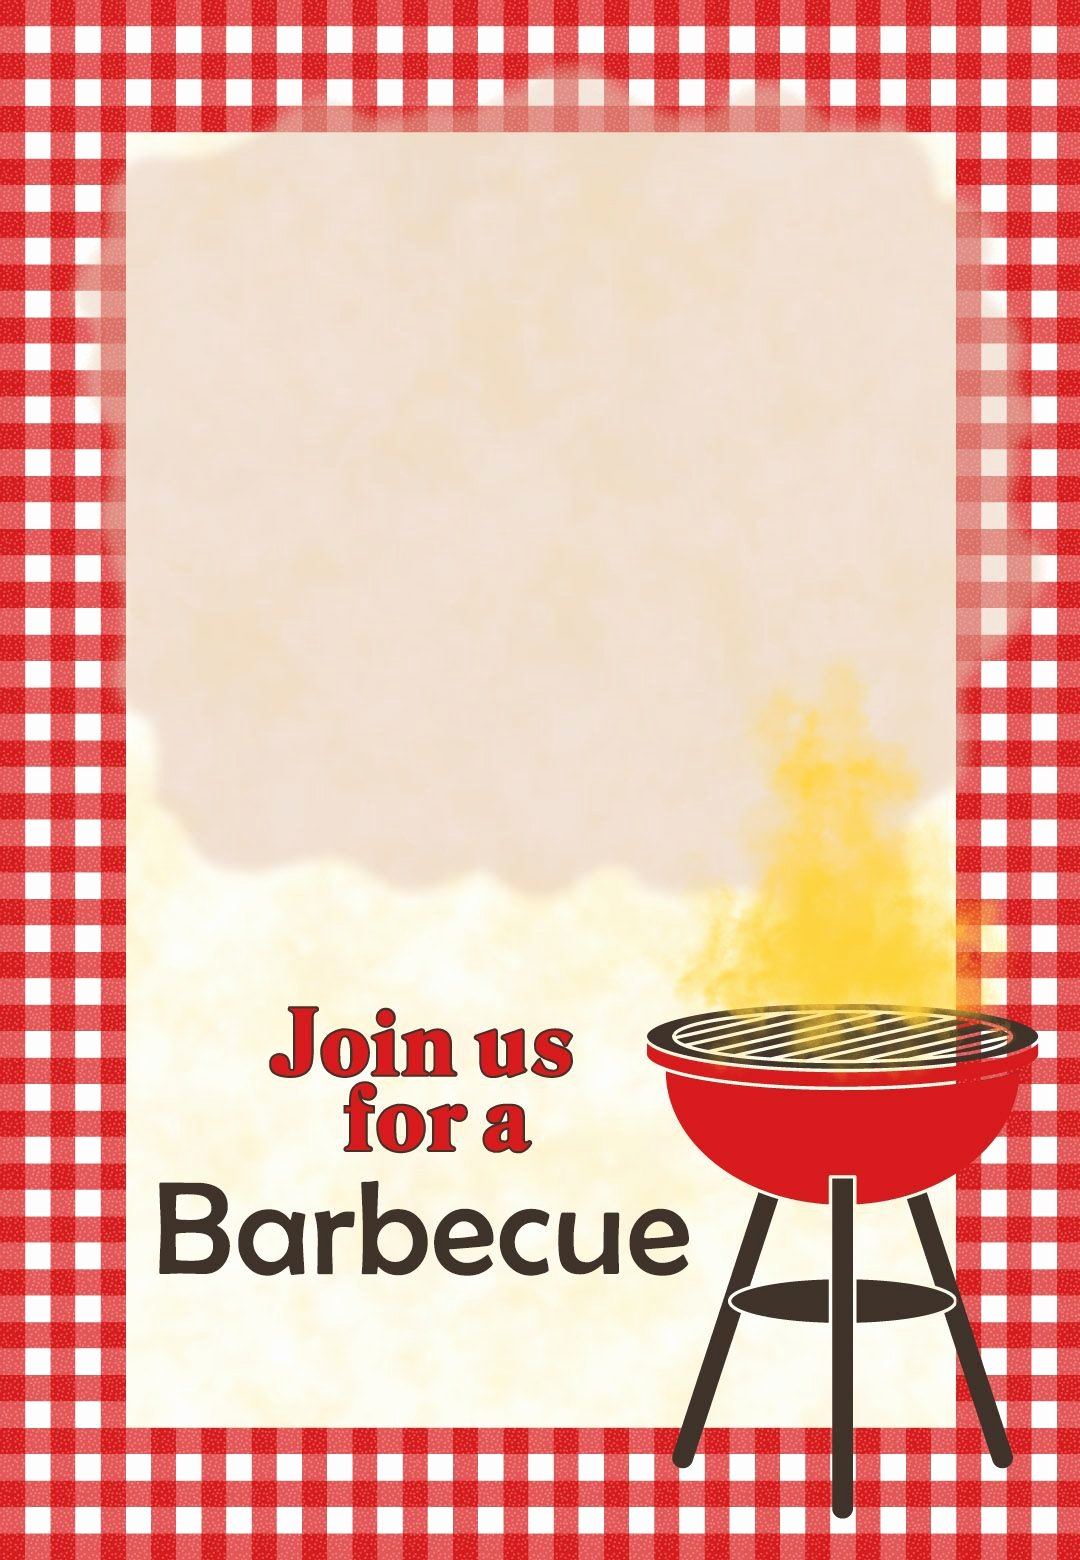 Bbq Invitation Template Word Best Of A Barbecue Free Printable Party Invitation Template